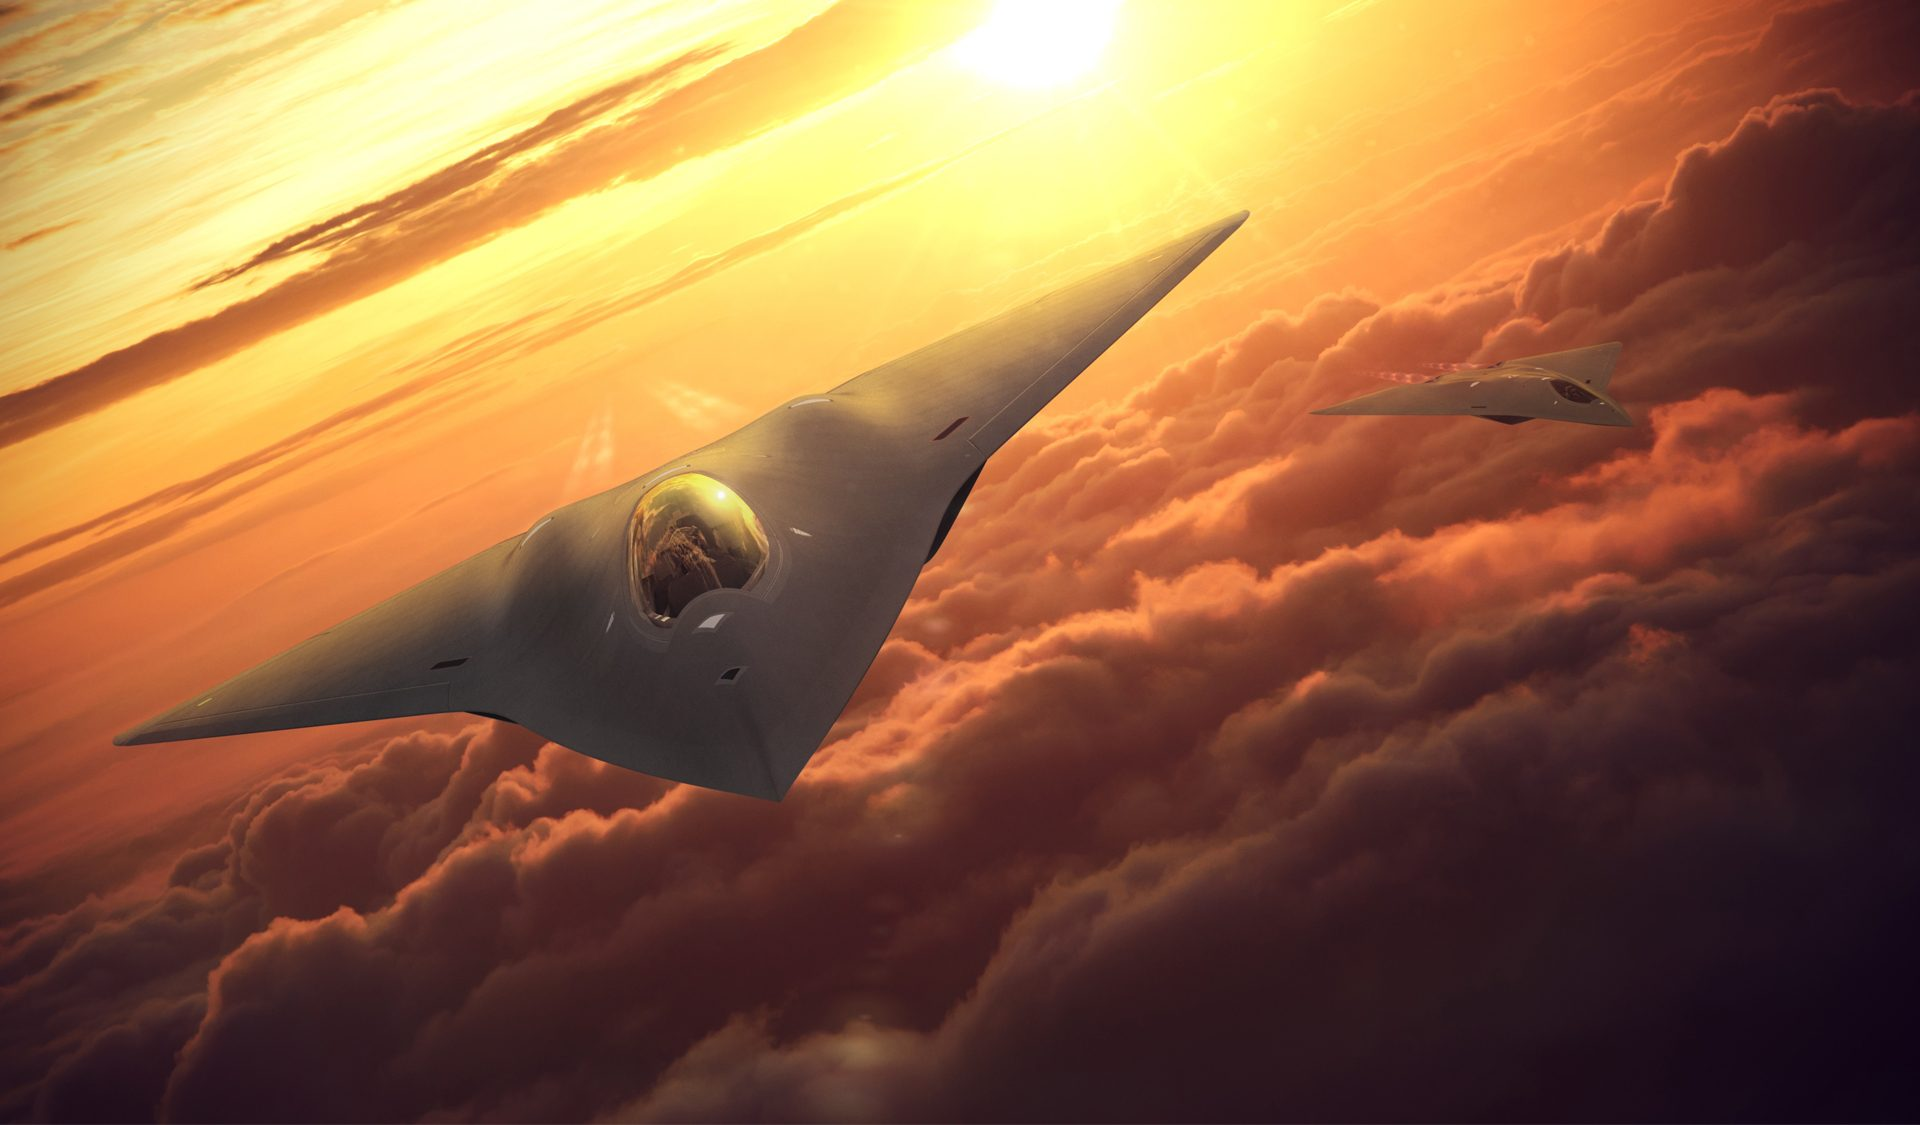 6th-gen takes to the air: The fastest, stealthiest, most lethal aircraft ever?